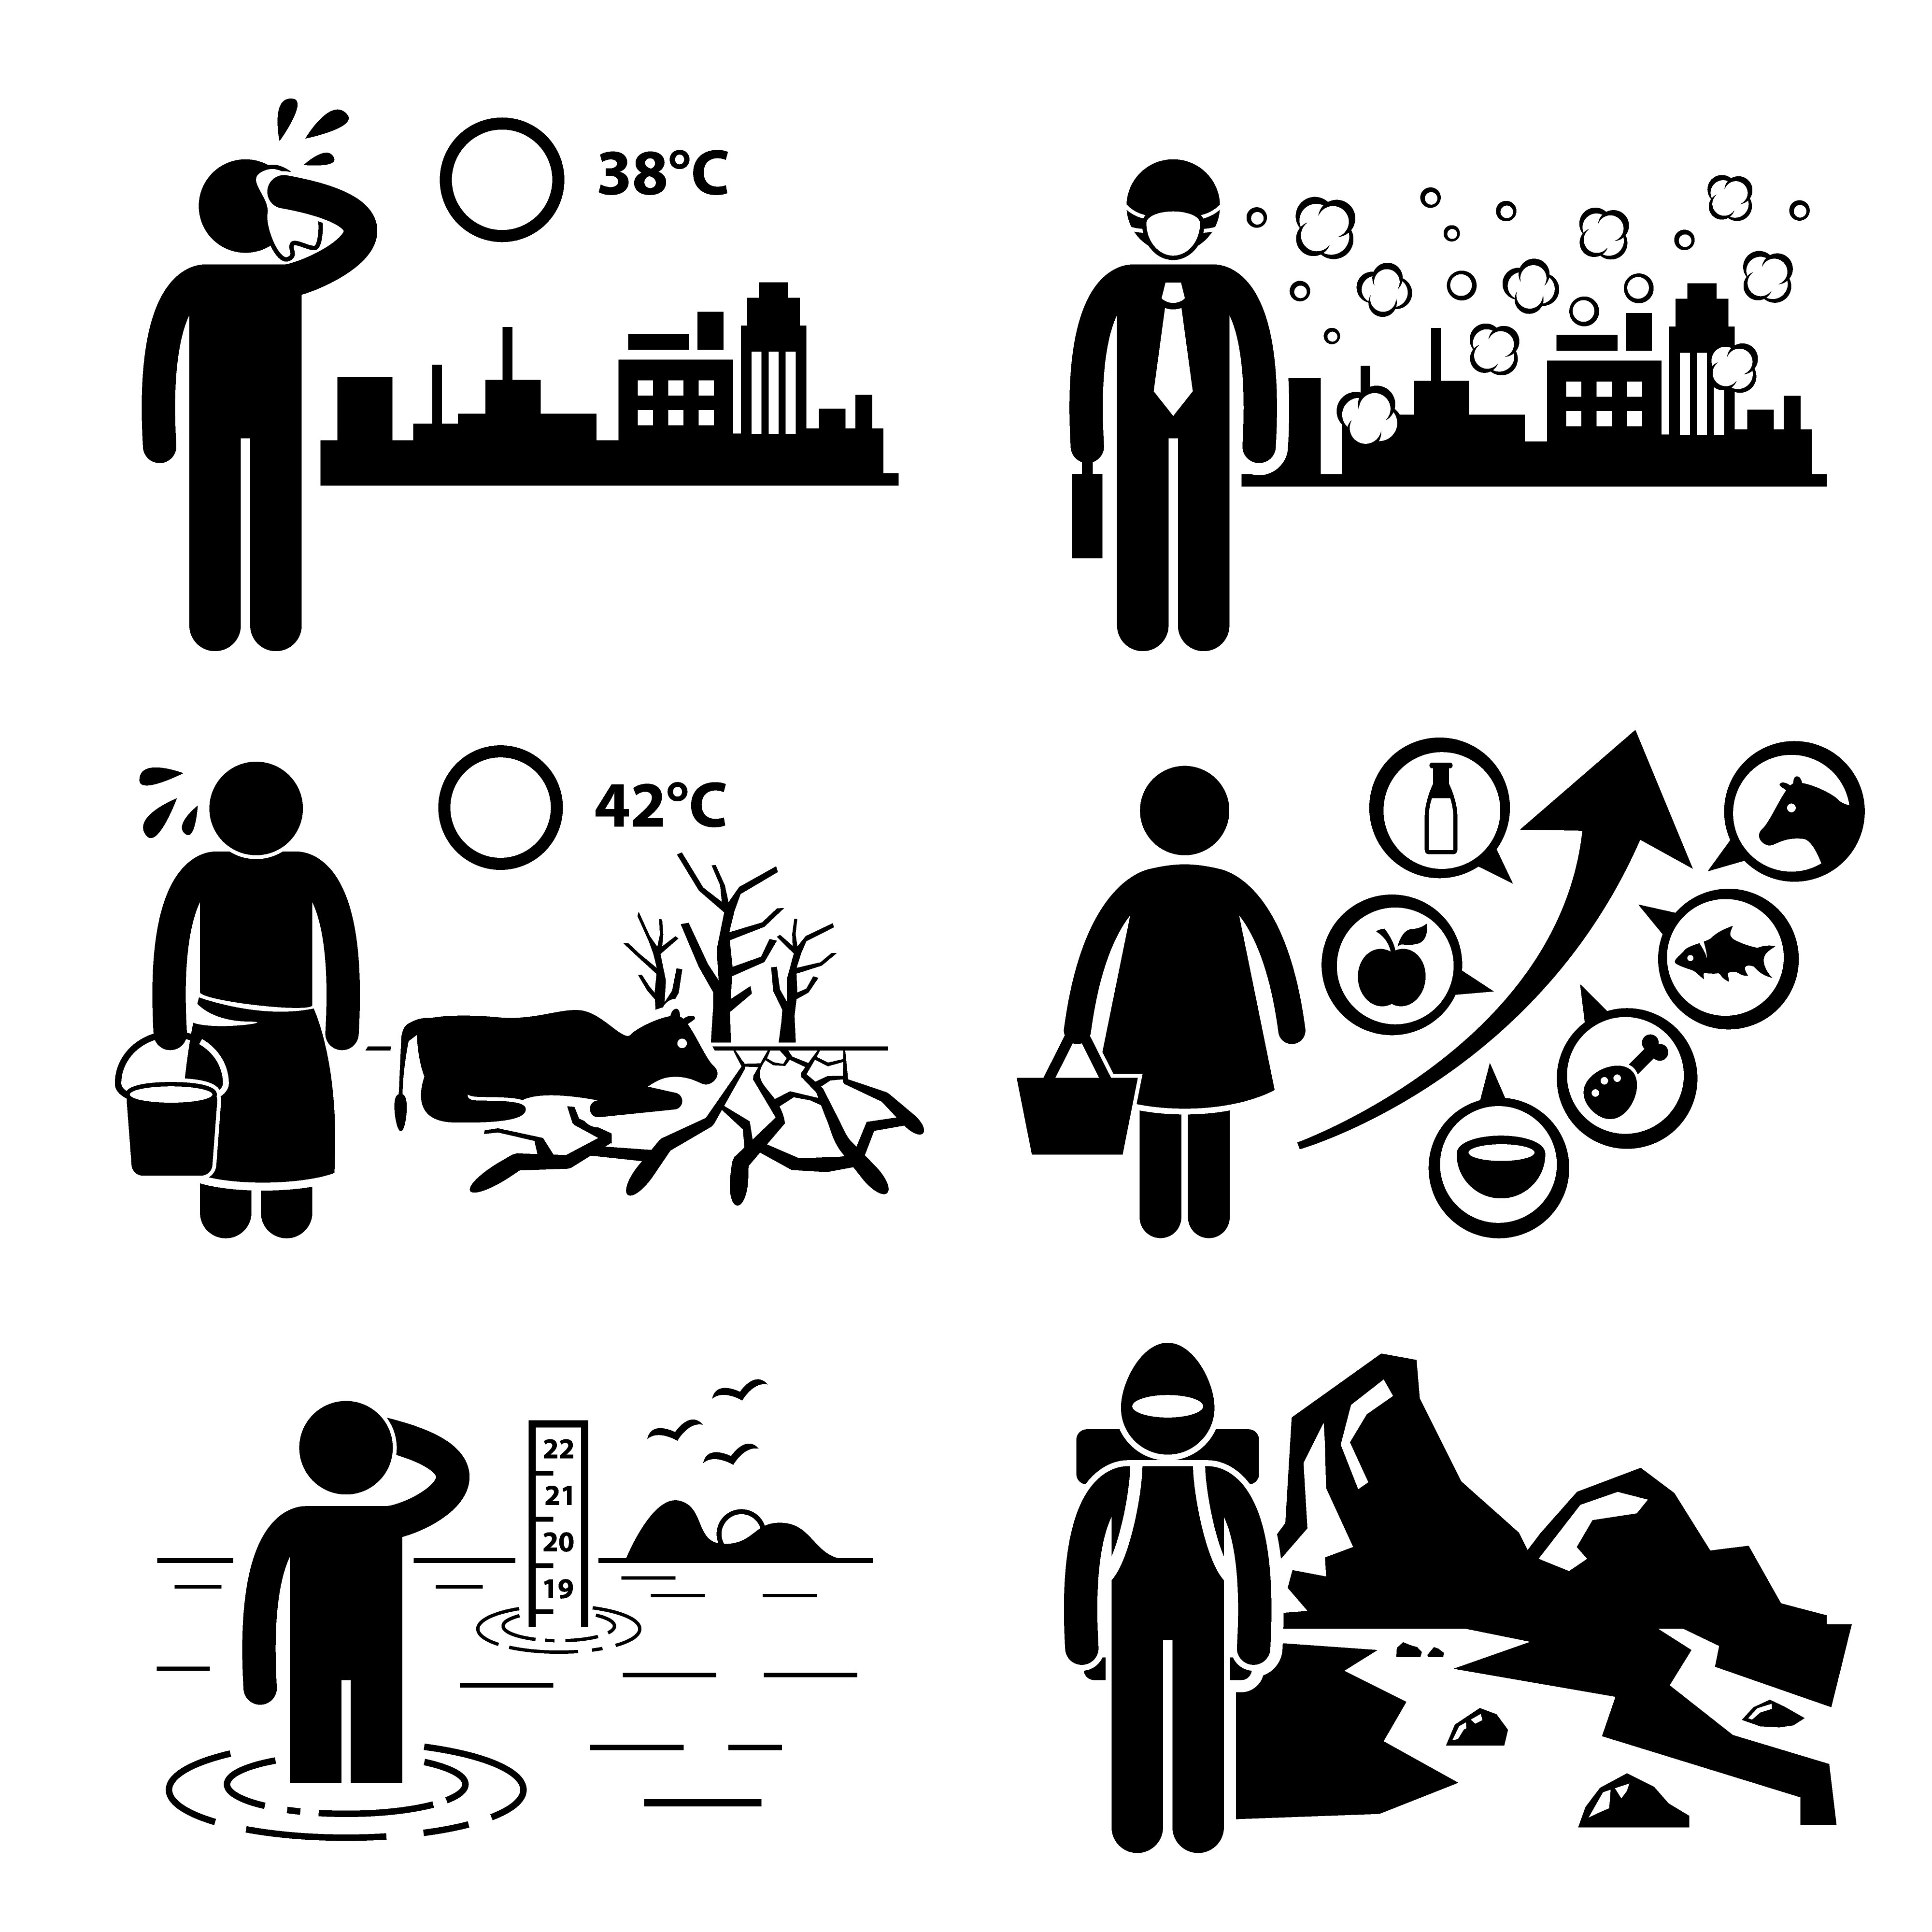 Global Warming Greenhouse Effects Stick Figure Pictogram